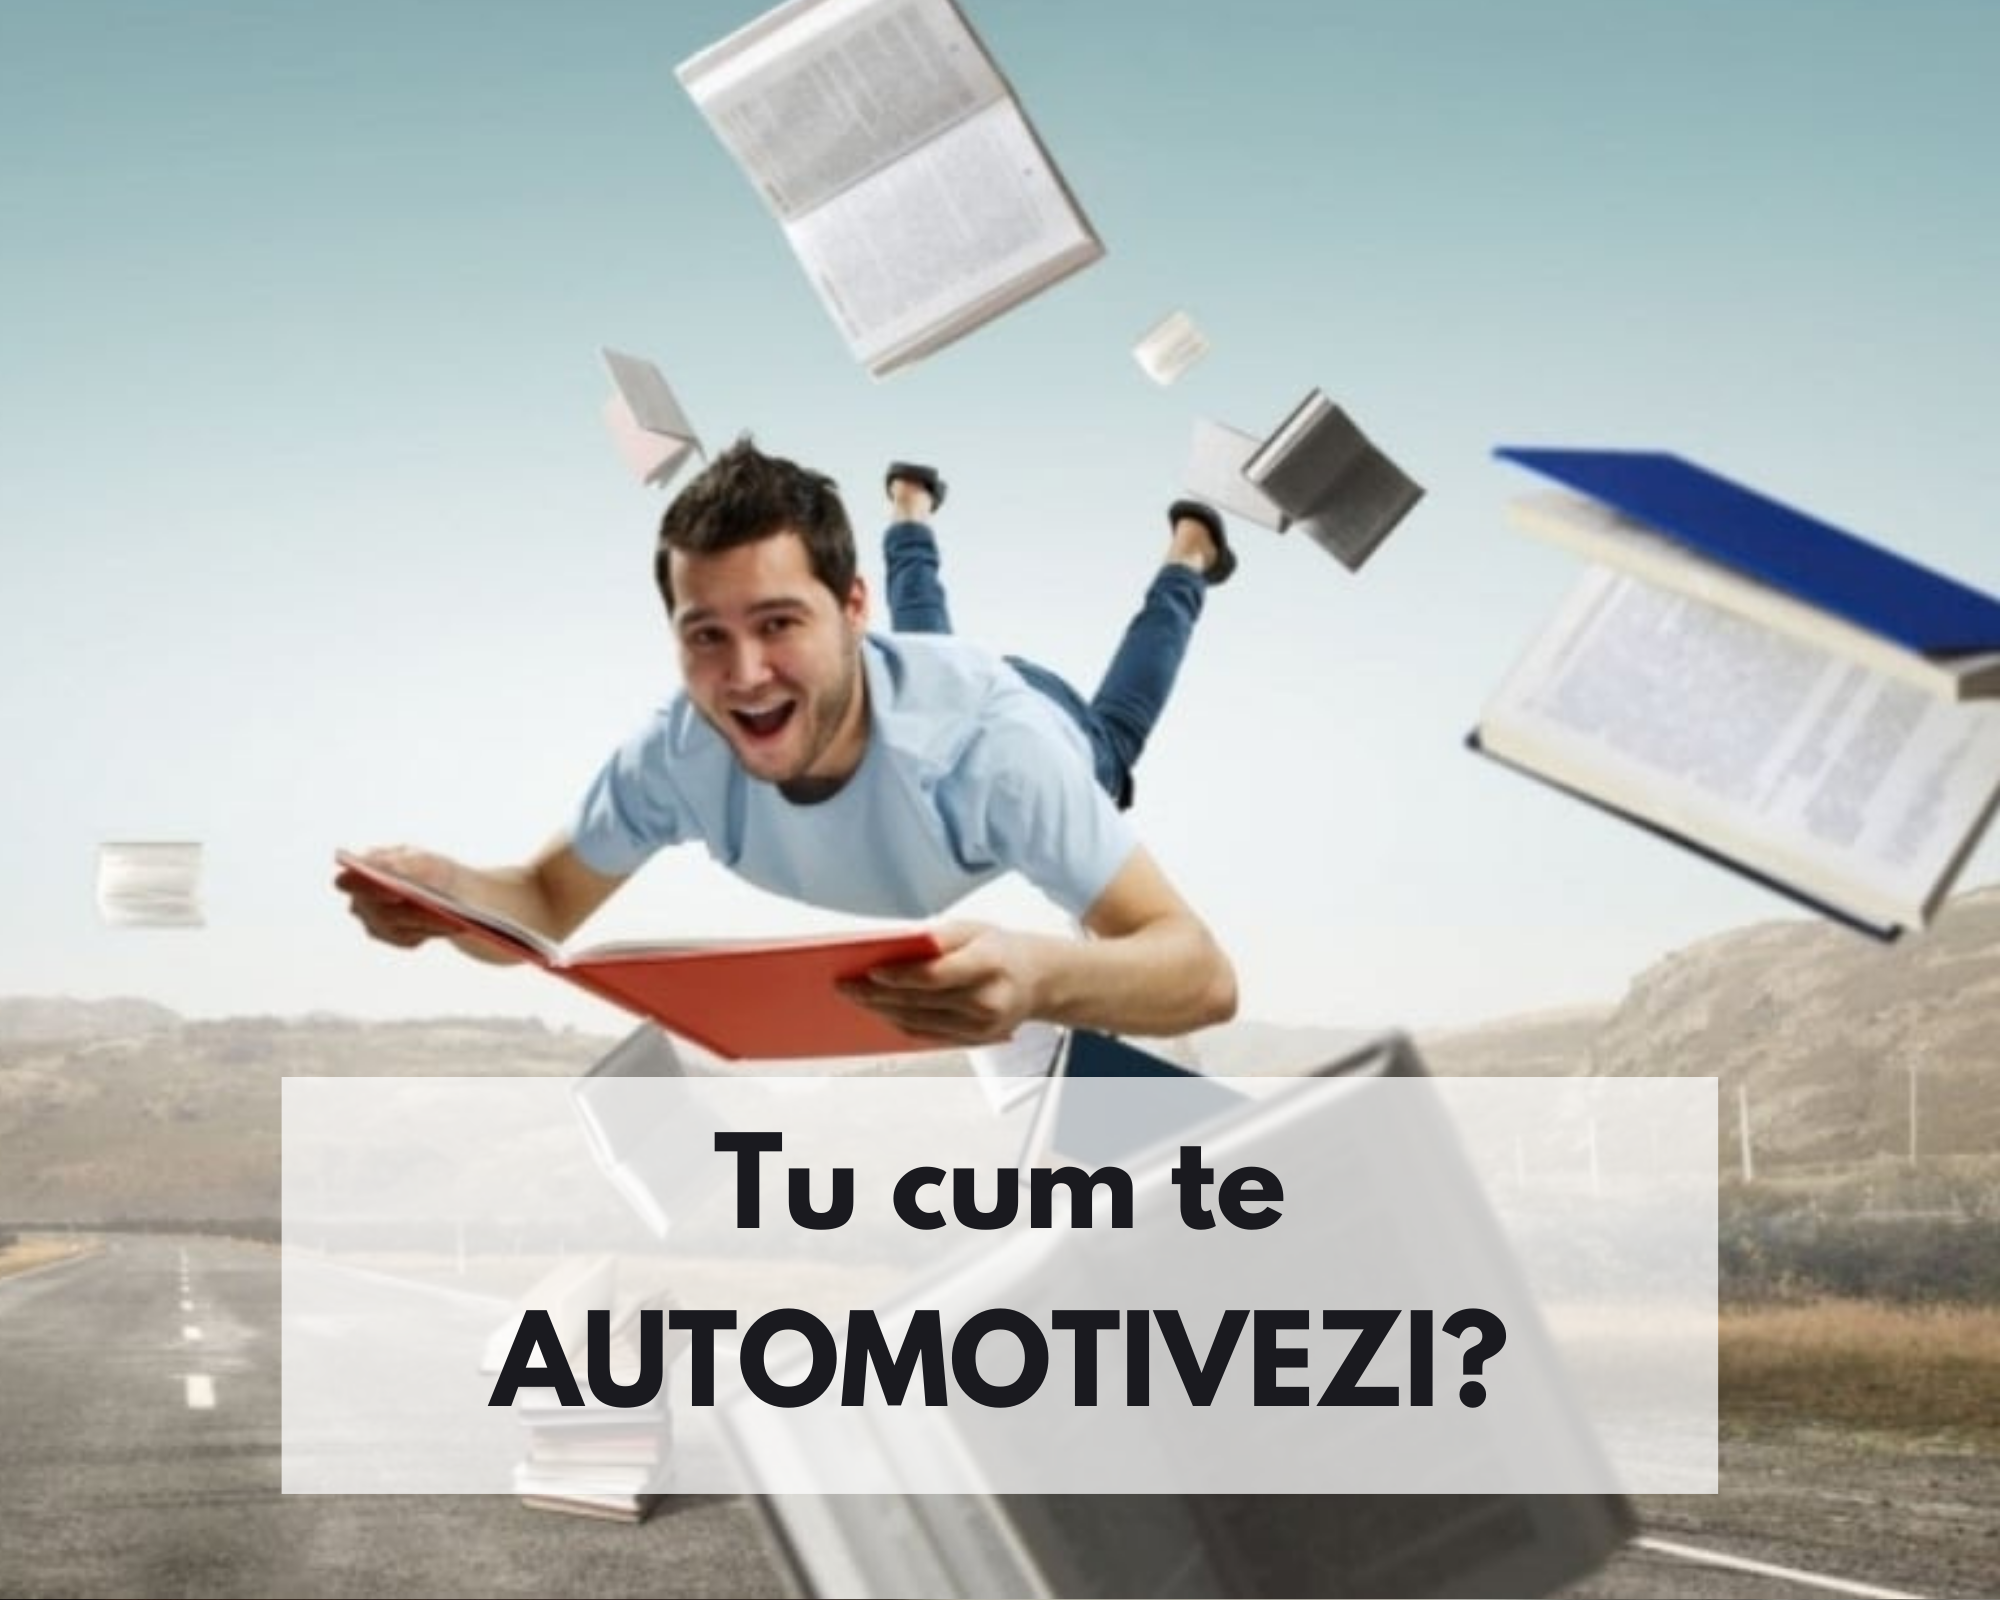 Tu cum te automotivezi?